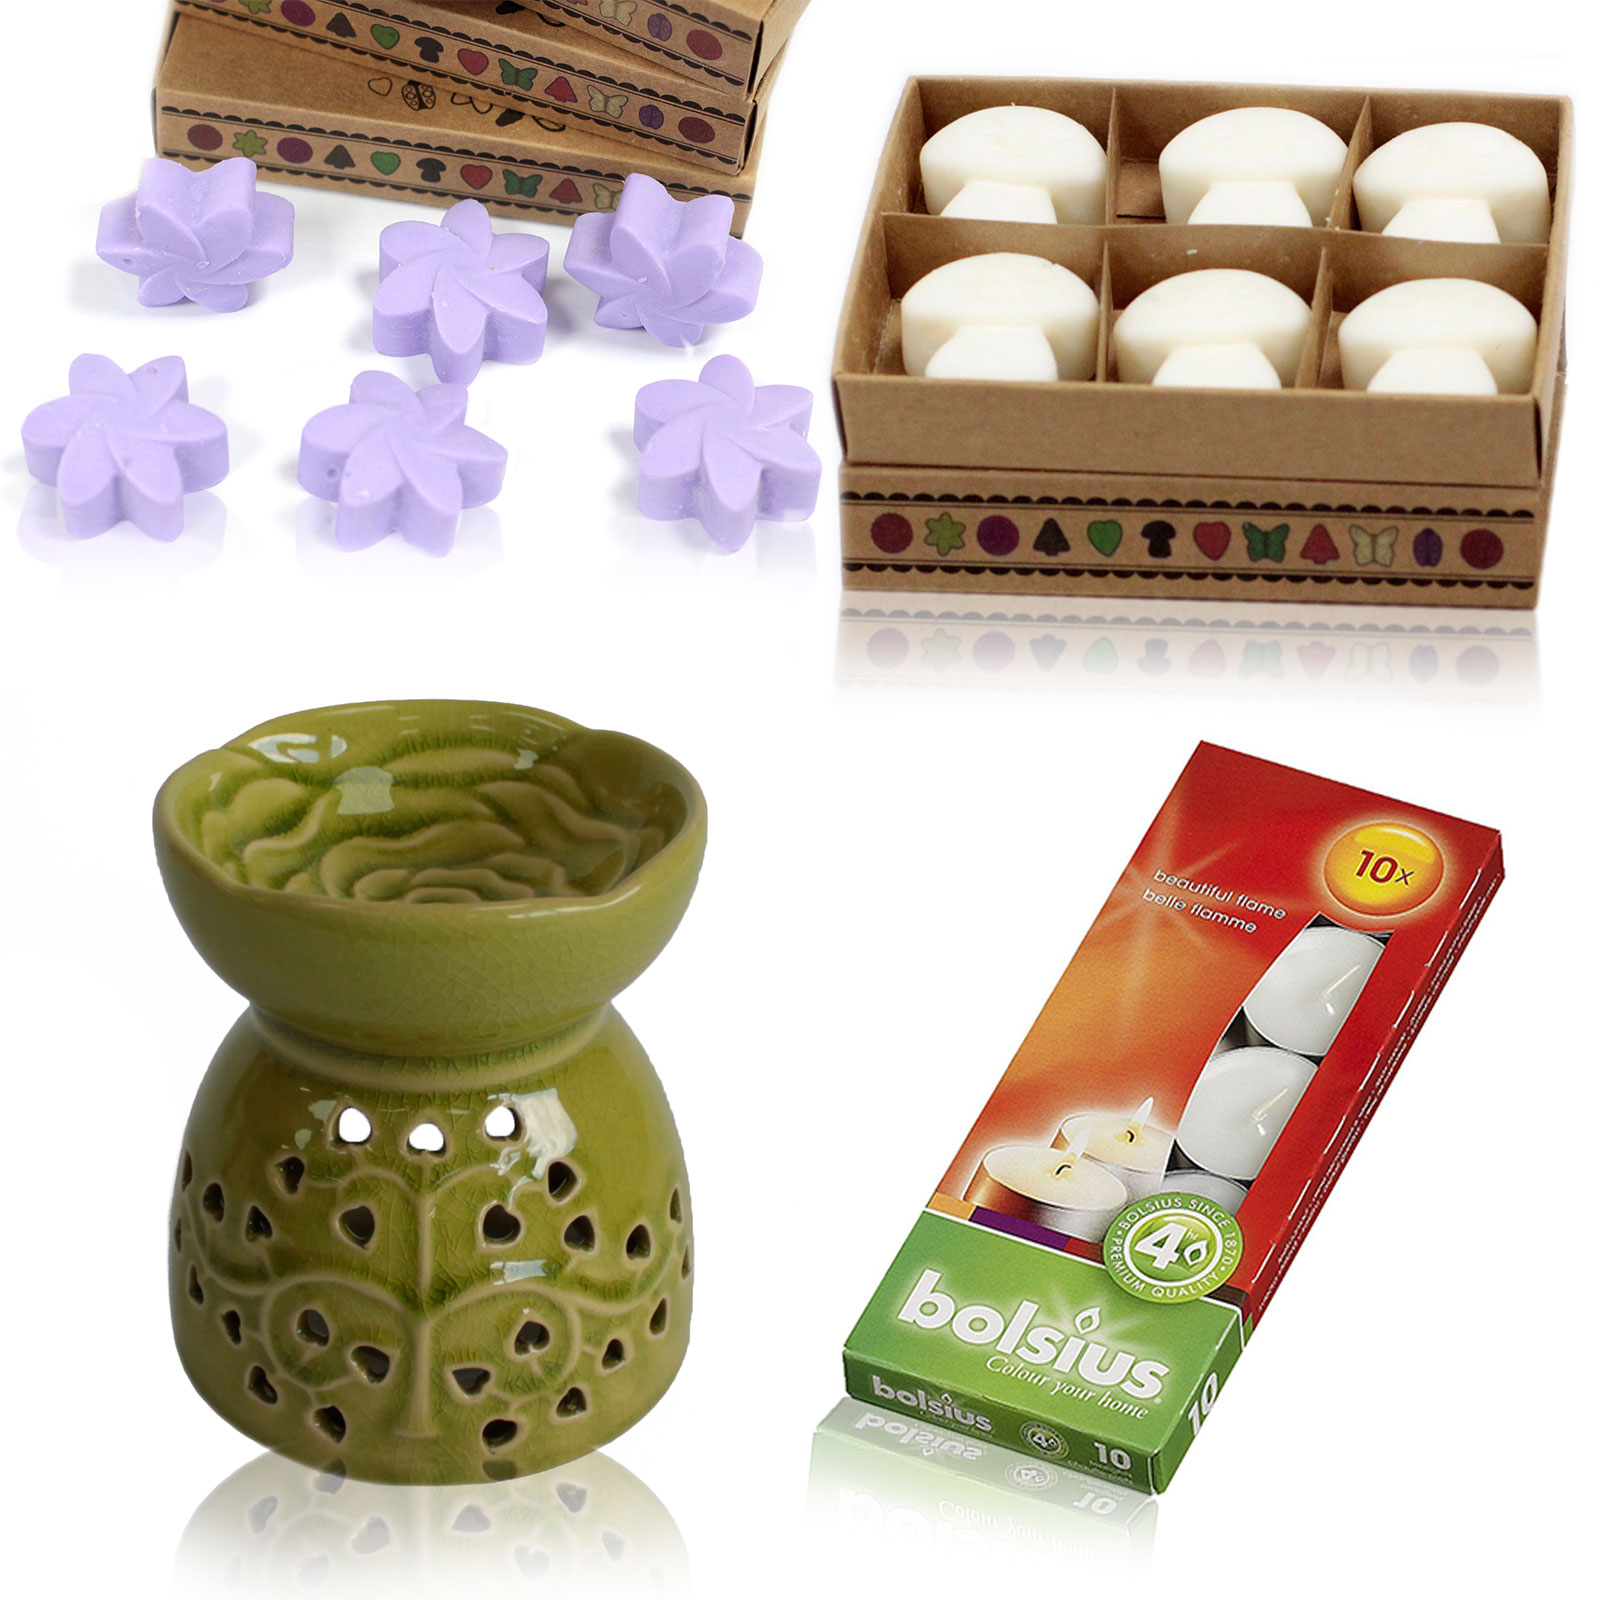 Oil-Burner-and-Wax-Melts-Kit